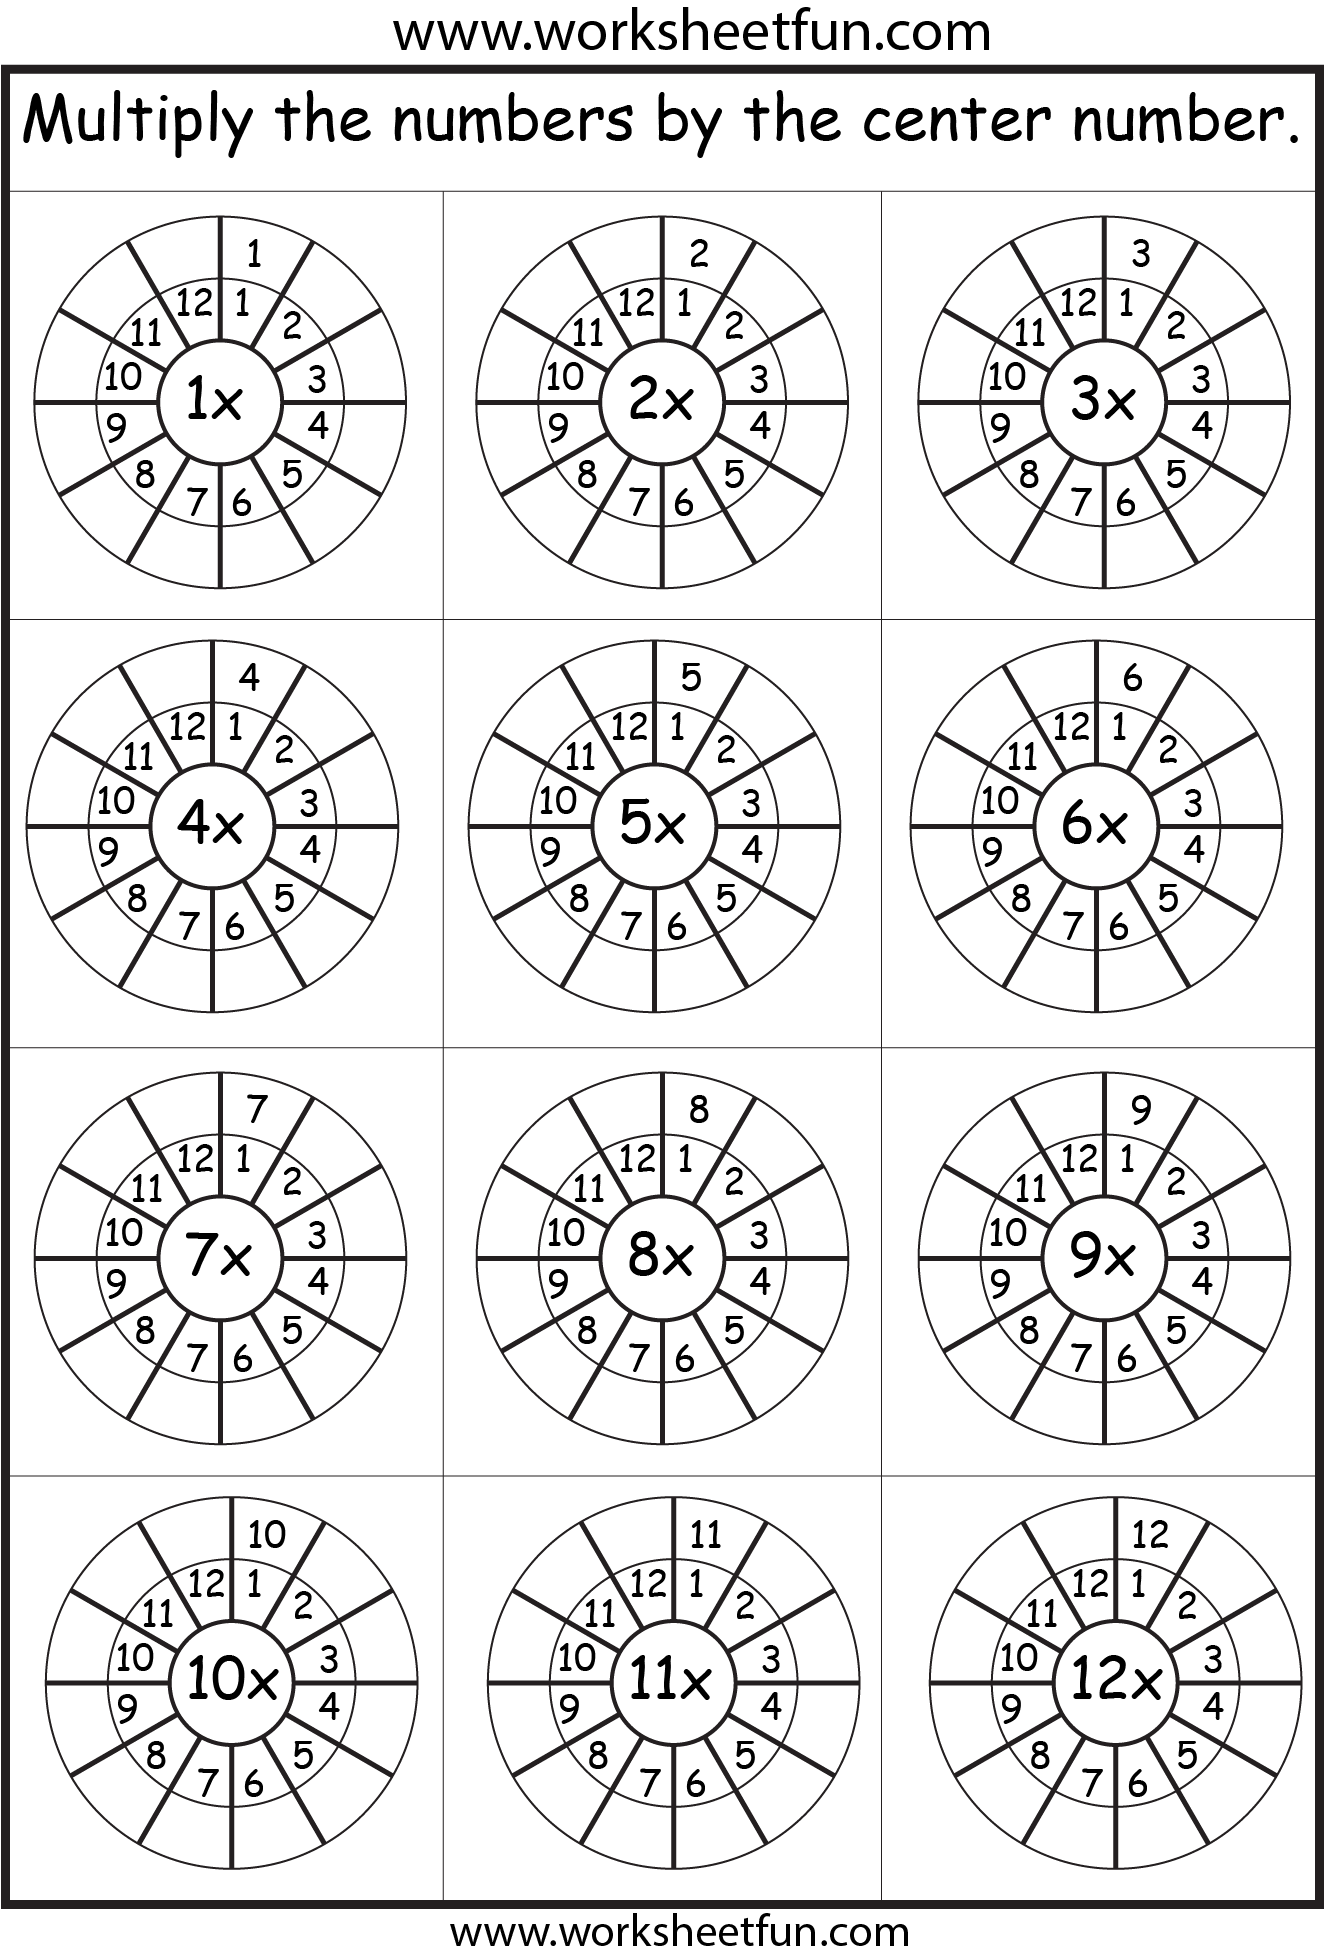 Times Table – 2-12 Worksheets – 1, 2, 3, 4, 5, 6, 7, 8, 9